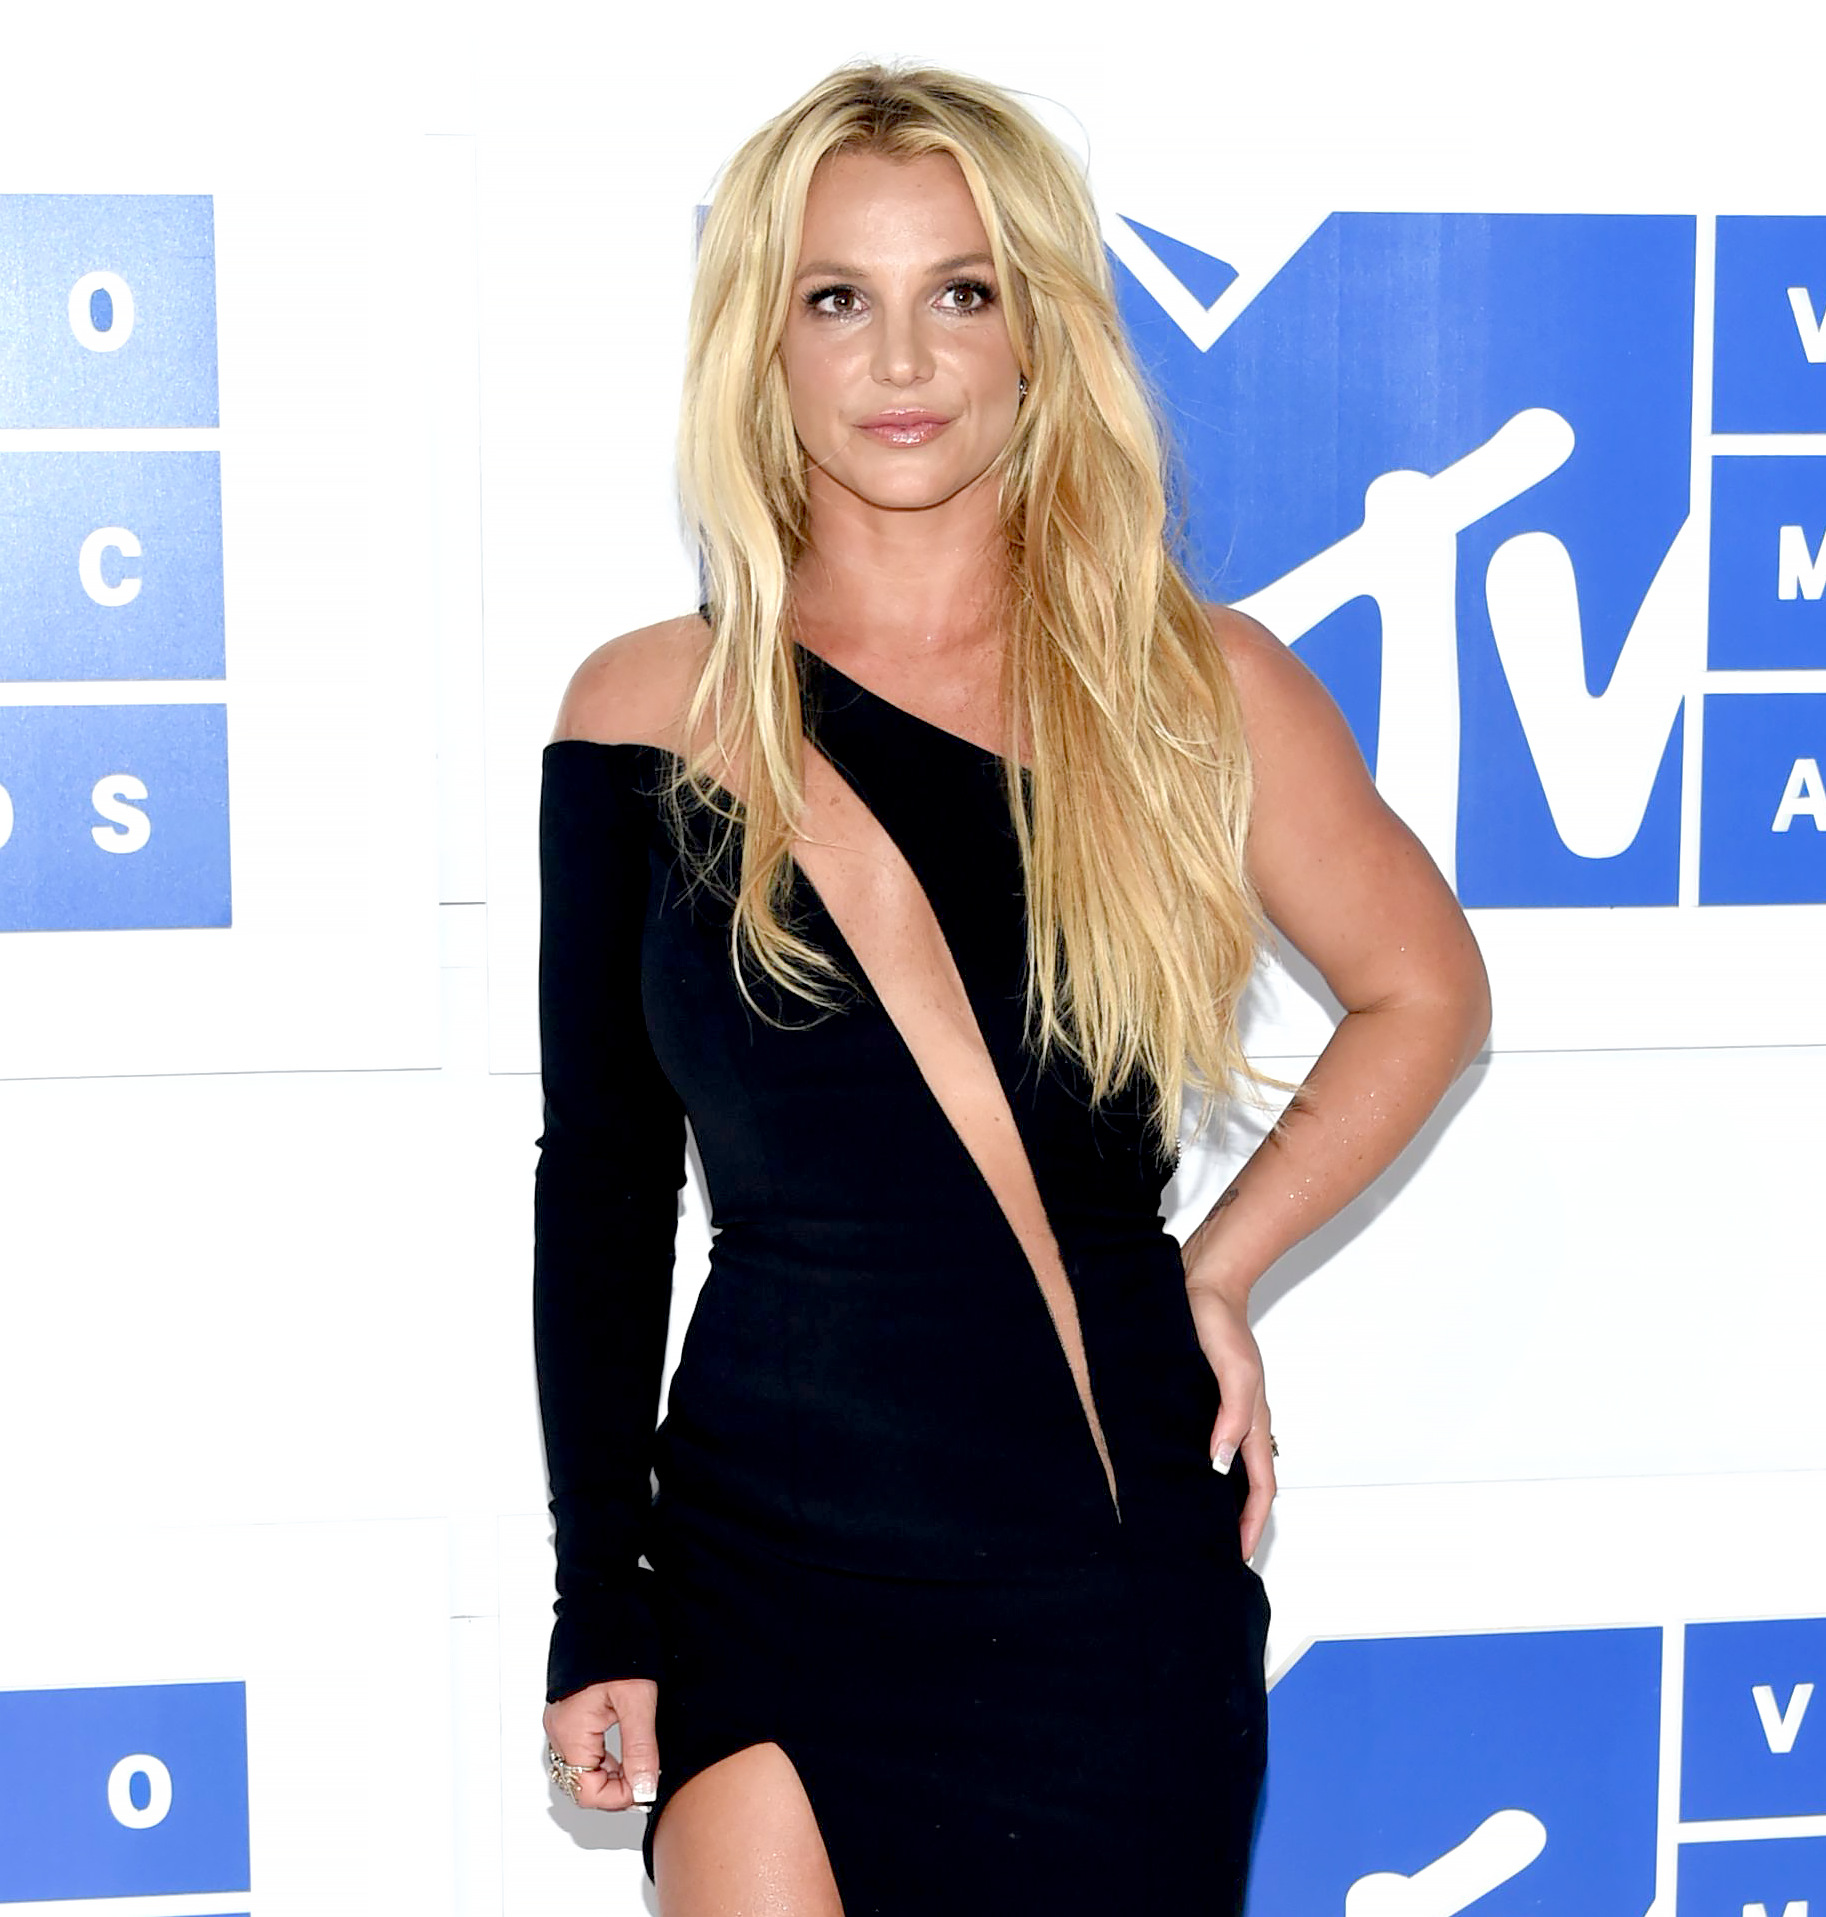 Britney Spears Tour 2020.Britney Spears Plans To Fight For Her Kids In Court